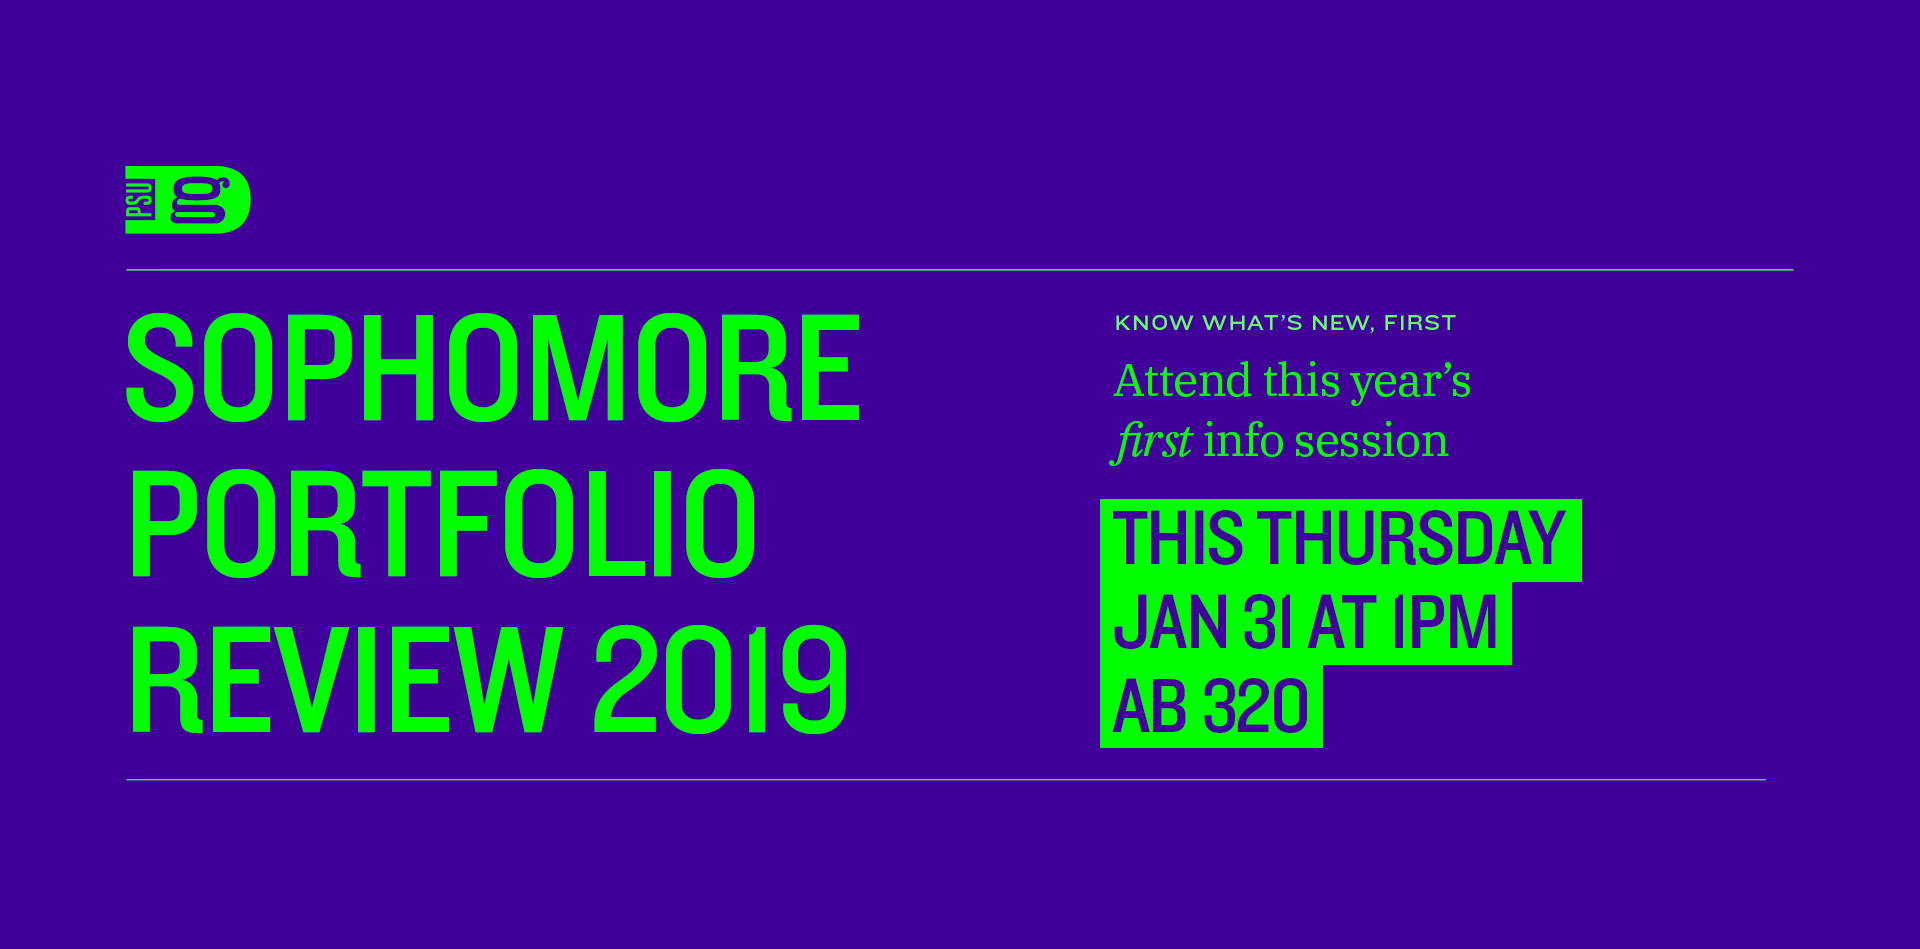 PSUGD Sophomore Portfolio Review 2019. Know what's new, first: Attend this year's first info session. This Thursday, January 31 at 1pm in AB 320.